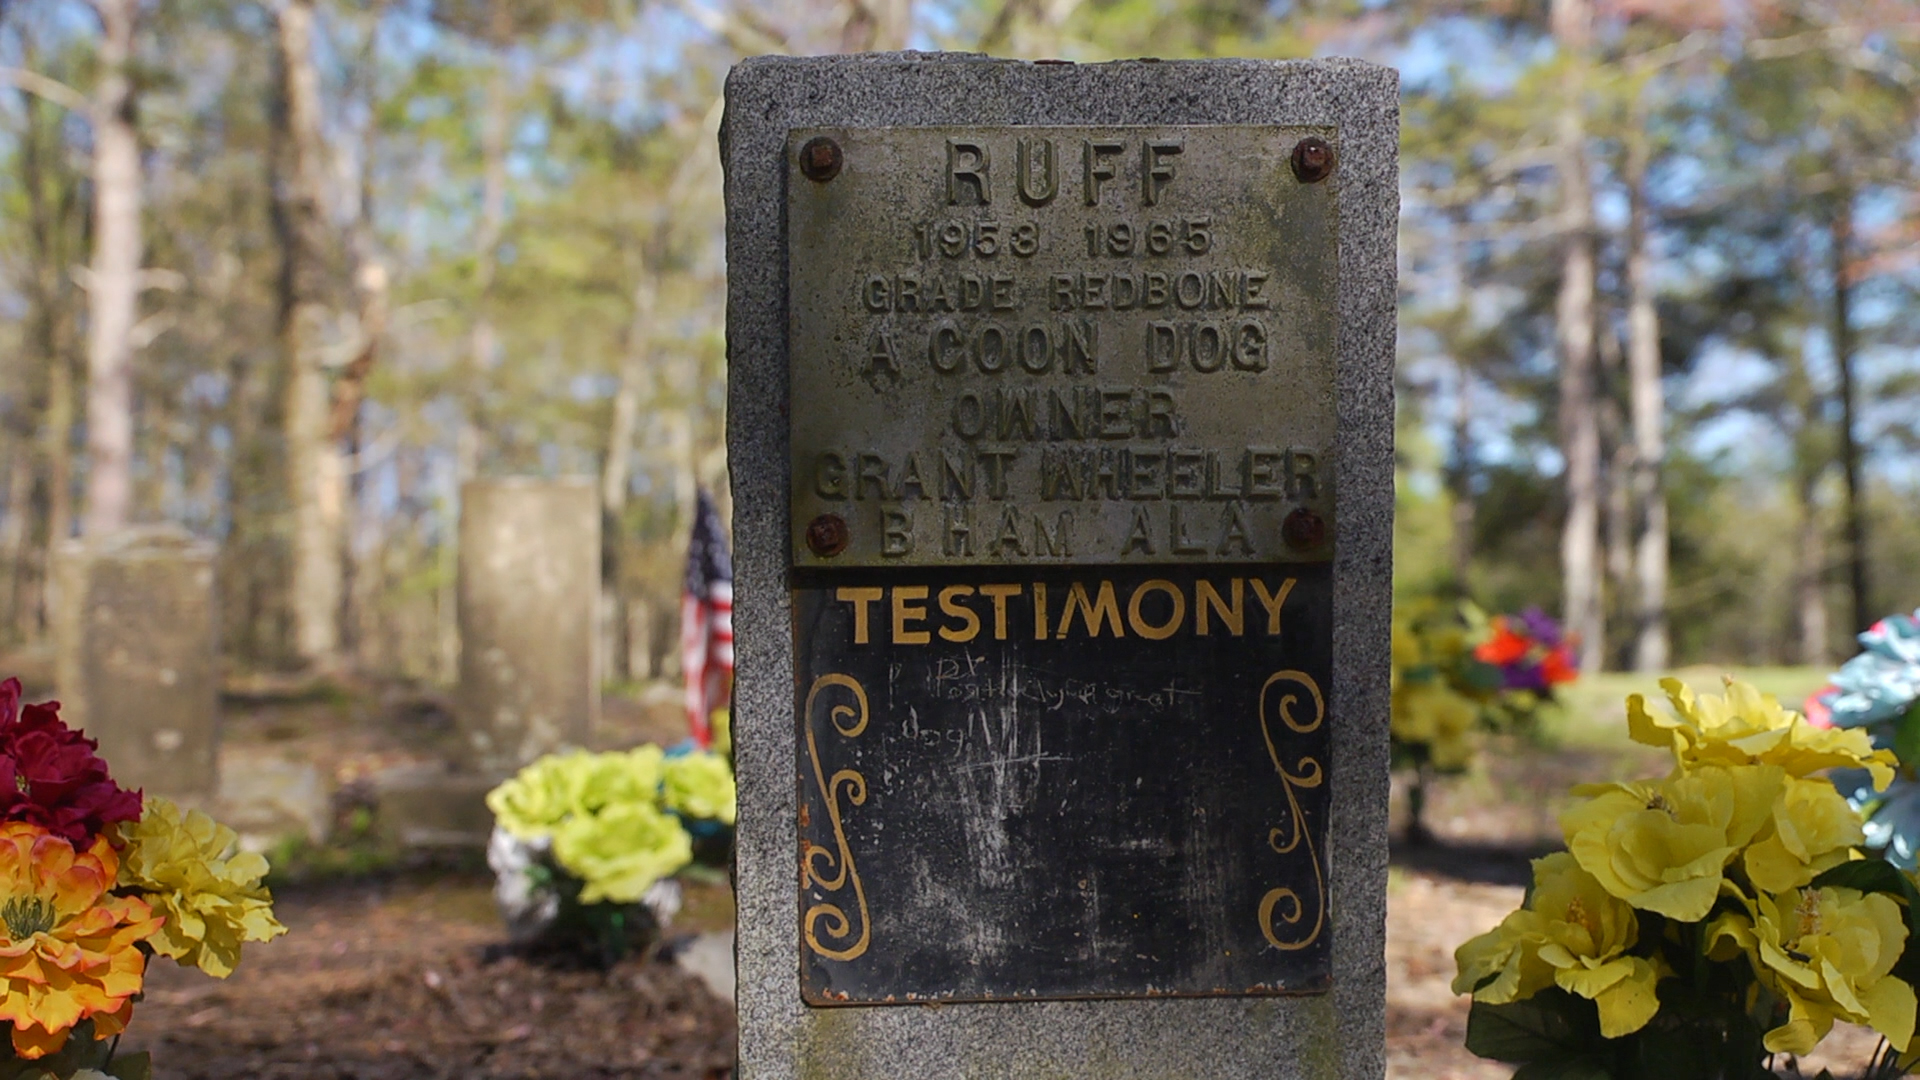 Coon Dog Cemetery Still